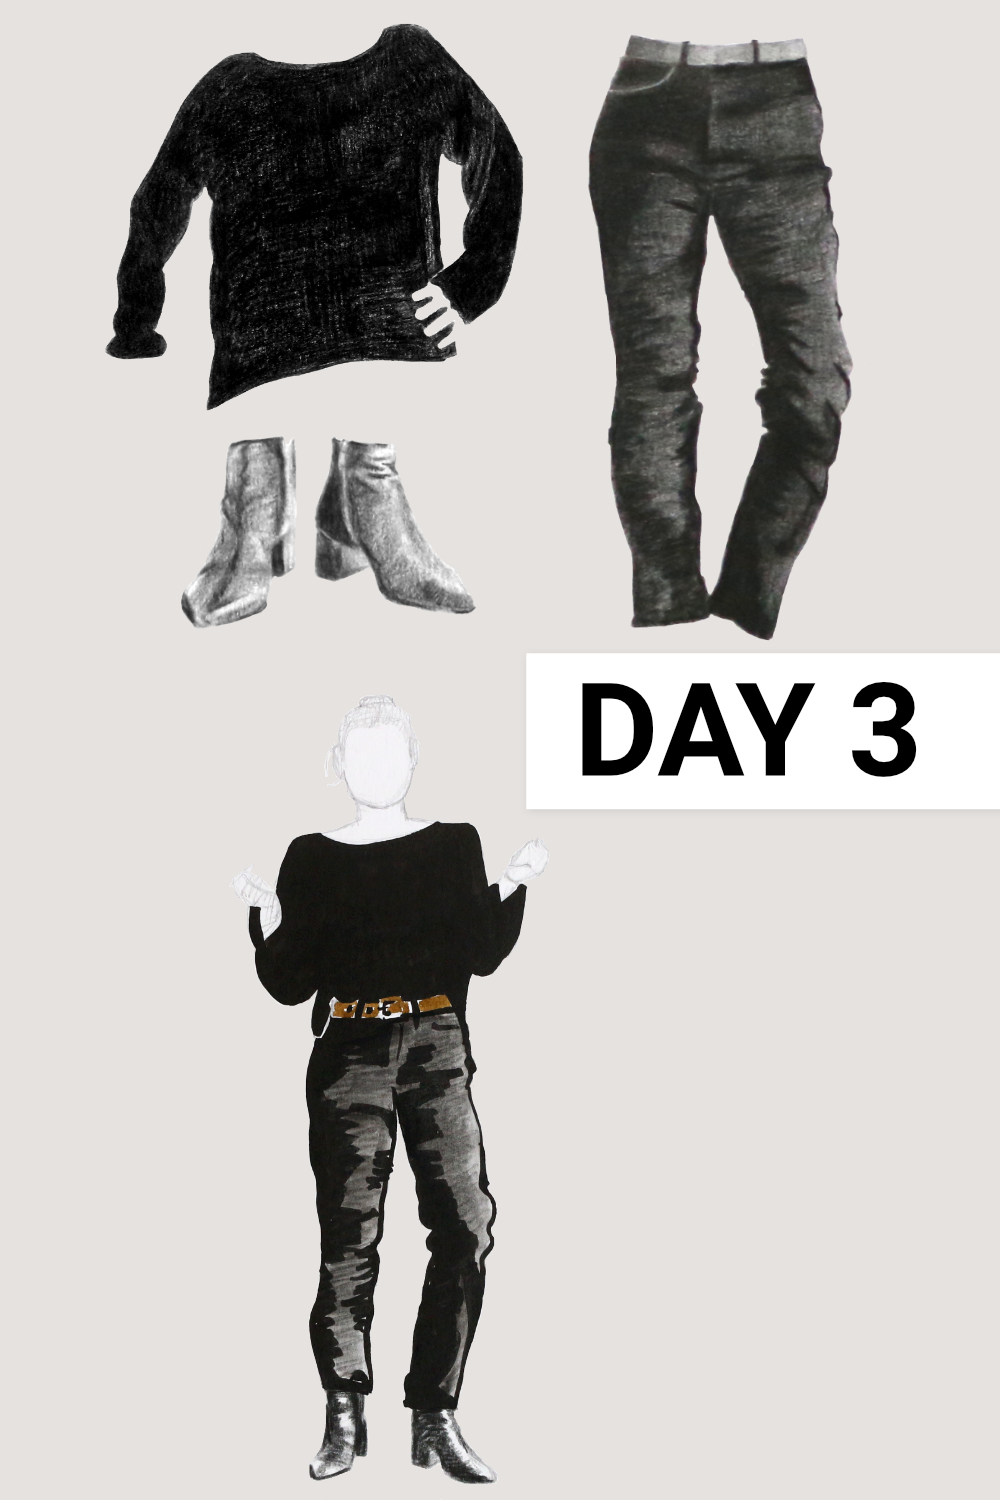 Day 3: Black boatneck ( Everlane , Black Cashmere Rib Boatneck, size M), black jeans ( Everlane , Authentic Stretch High-Rise Cigarette, size 31), black boots ( Everlane , The Boss Boot)    Drawing a Capsule Wardrobe , by The Daily Atelier #10x10Friends #Winter10x10 #StyleBee10x10